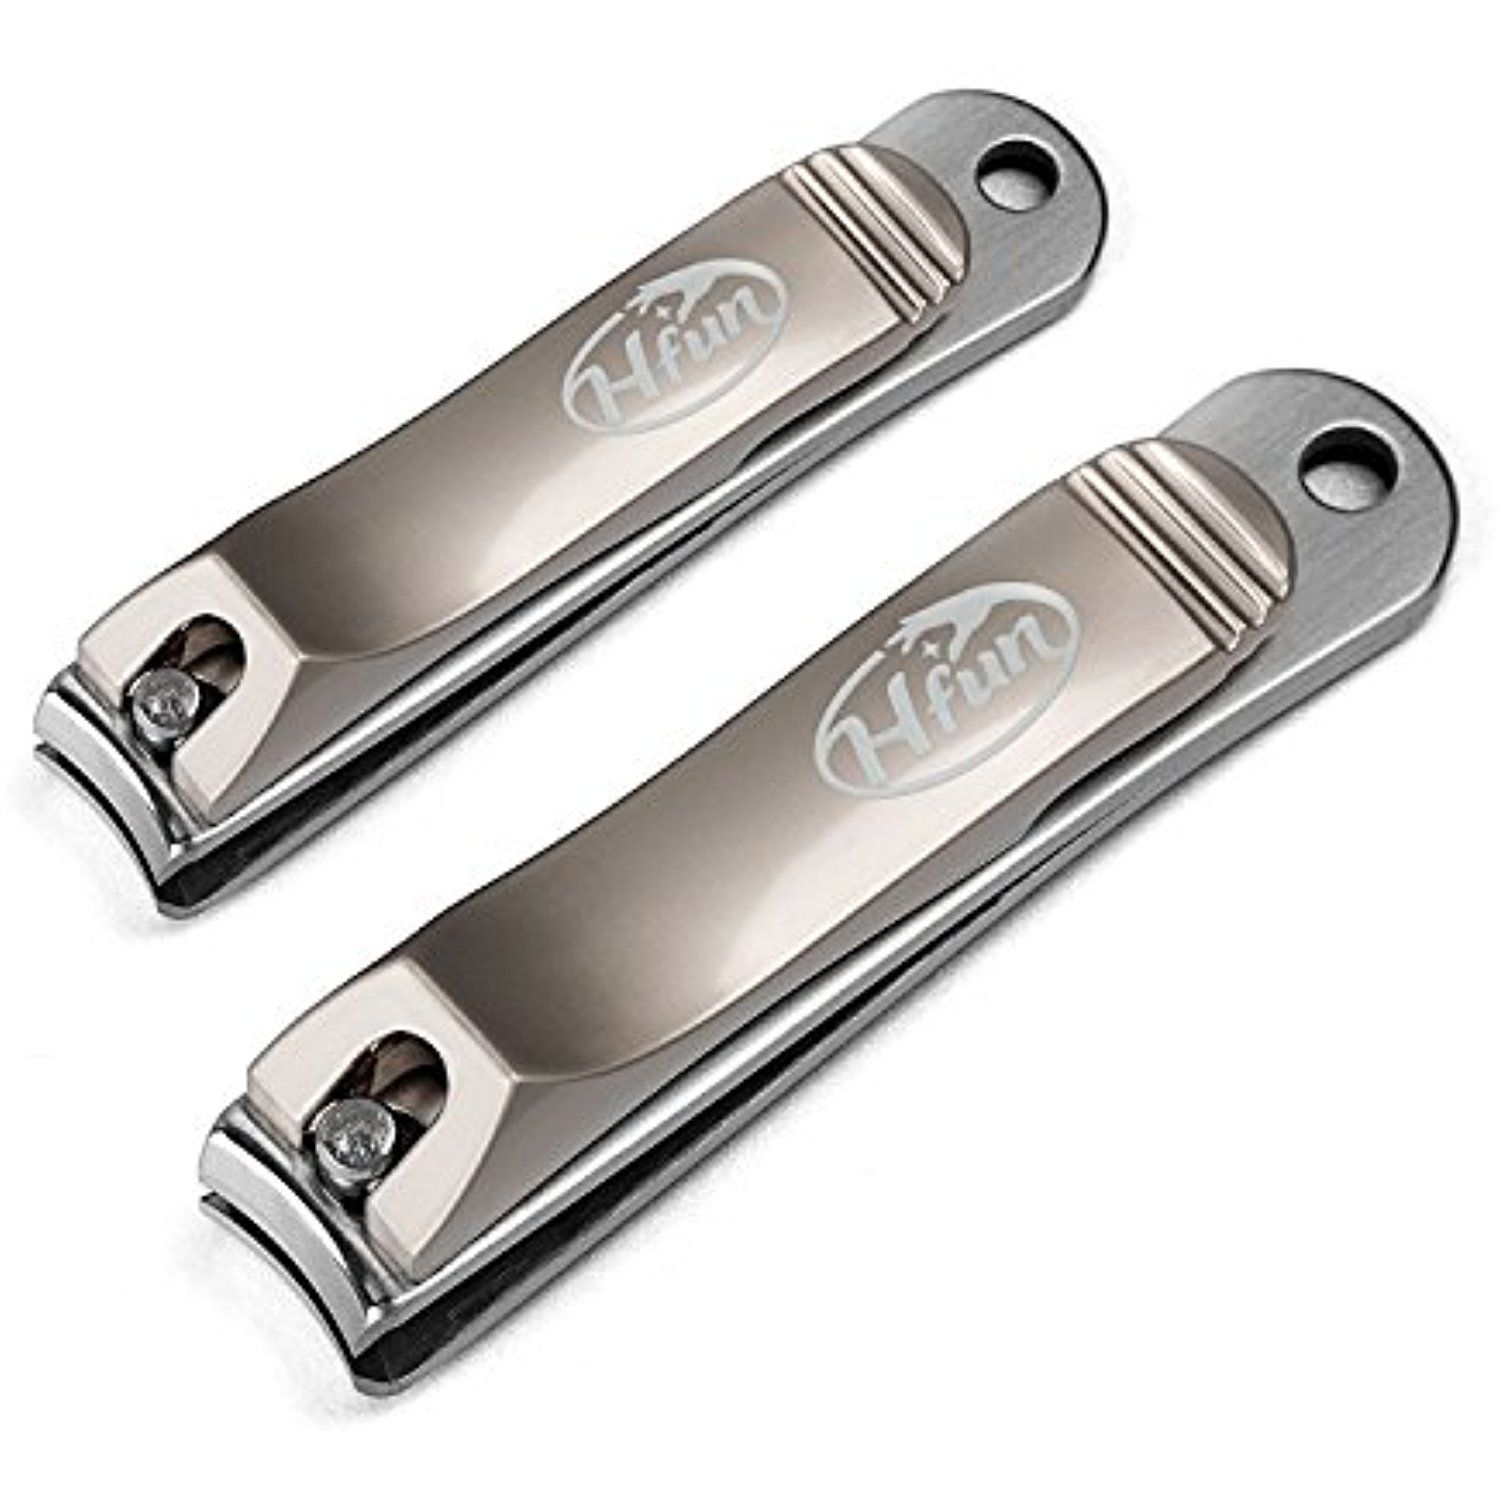 Hfun Nail Clippers Set- Stainless Steel Fingernail and Toenail ...